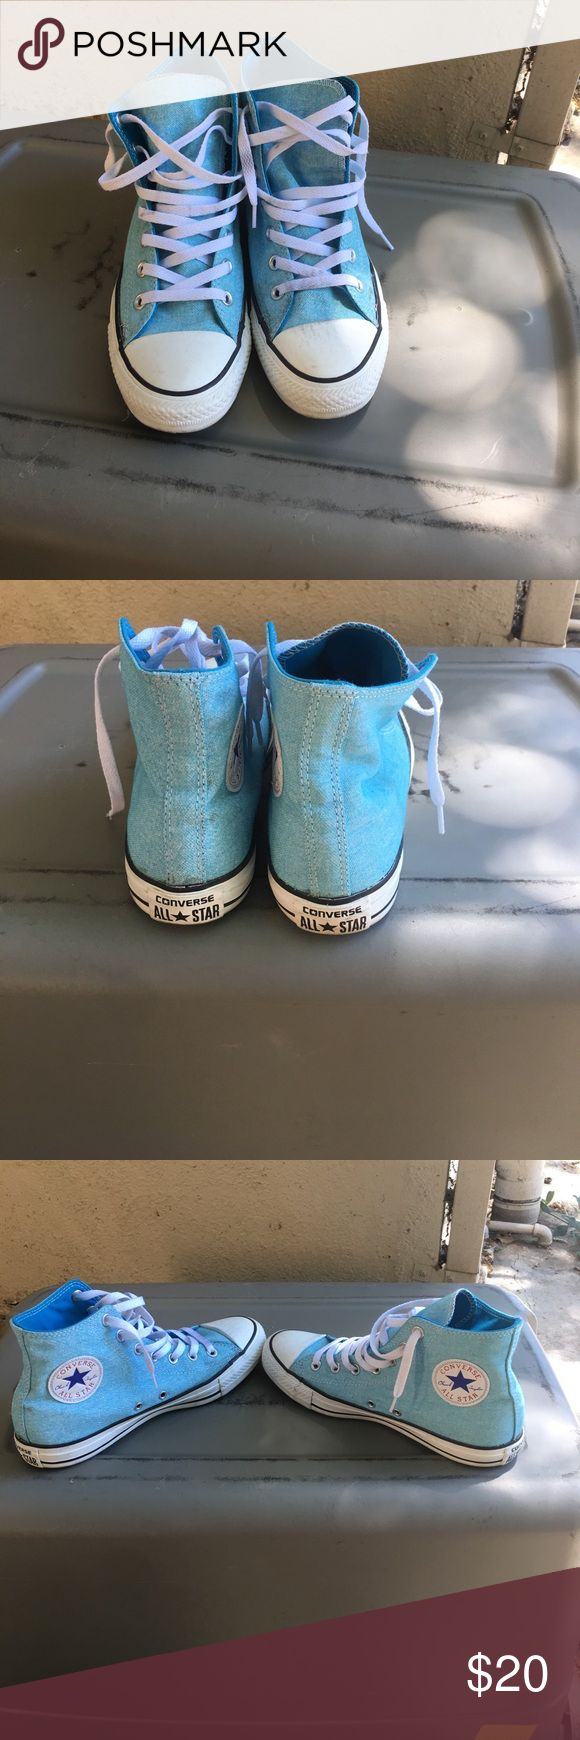 Heathered blue high top chucks. Lady 8 men 6! These like new high top converse can be brought back to new with a magic eraser easily. I would do this but they're too small for me anyhow! Converse Shoes Sneakers